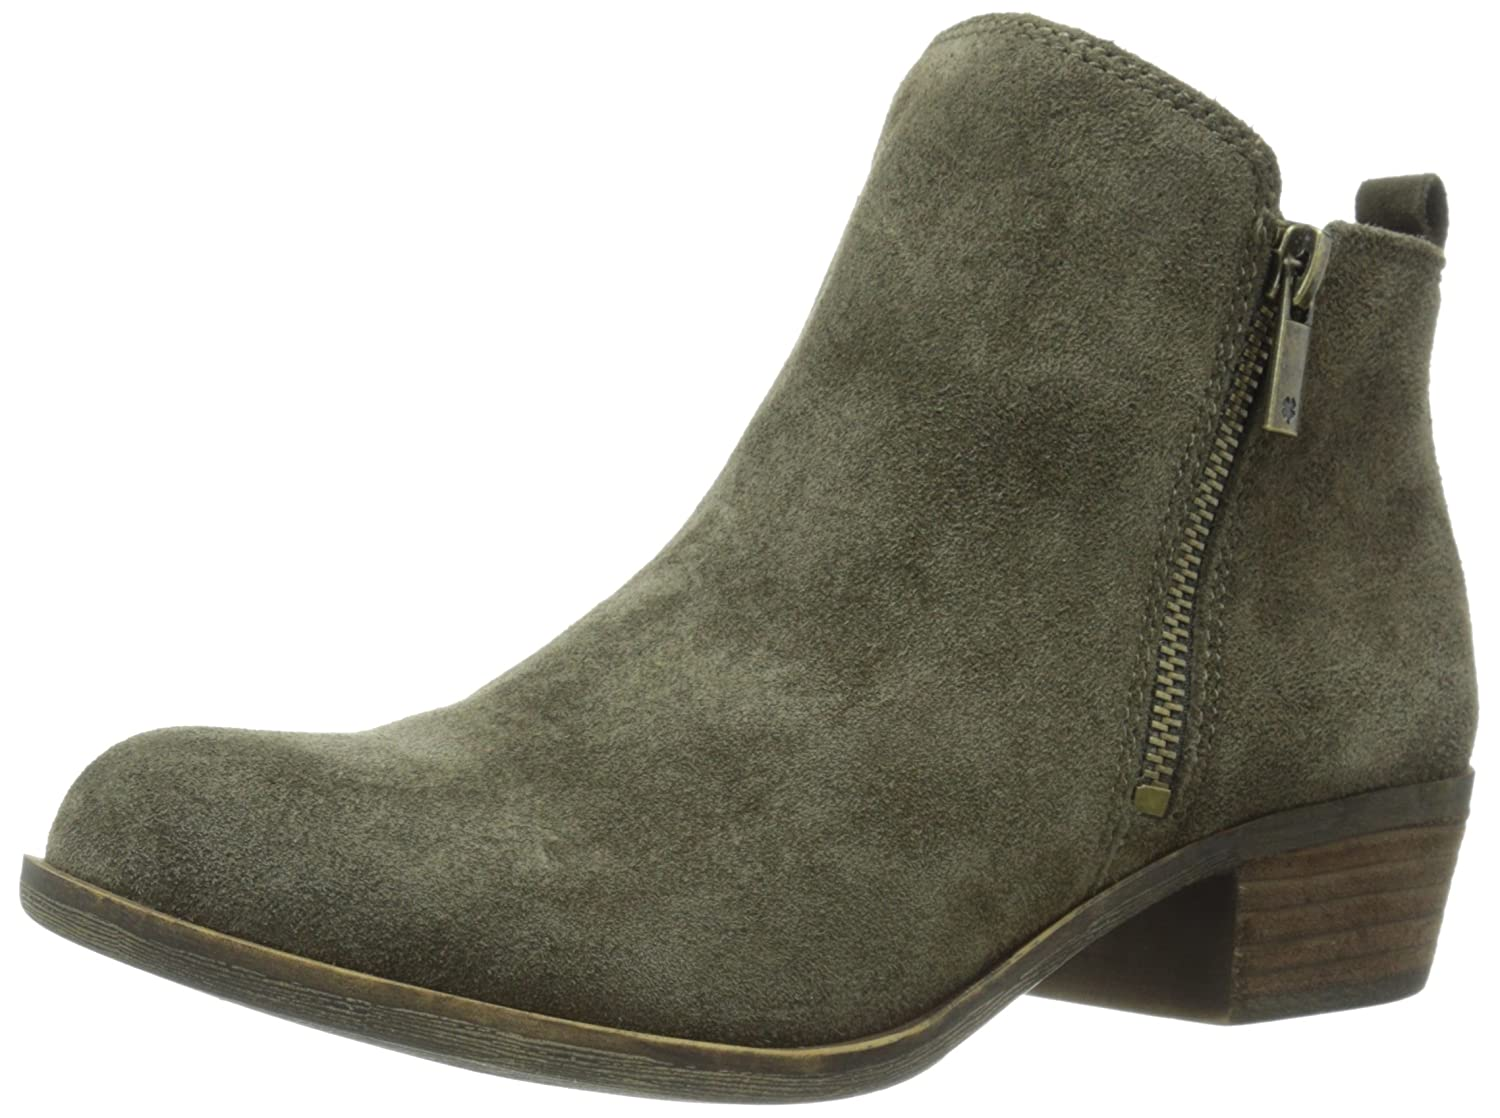 Lucky Brand Women's Basel Boot B00UPG5RE8 10 B(M) US|Italian Olive